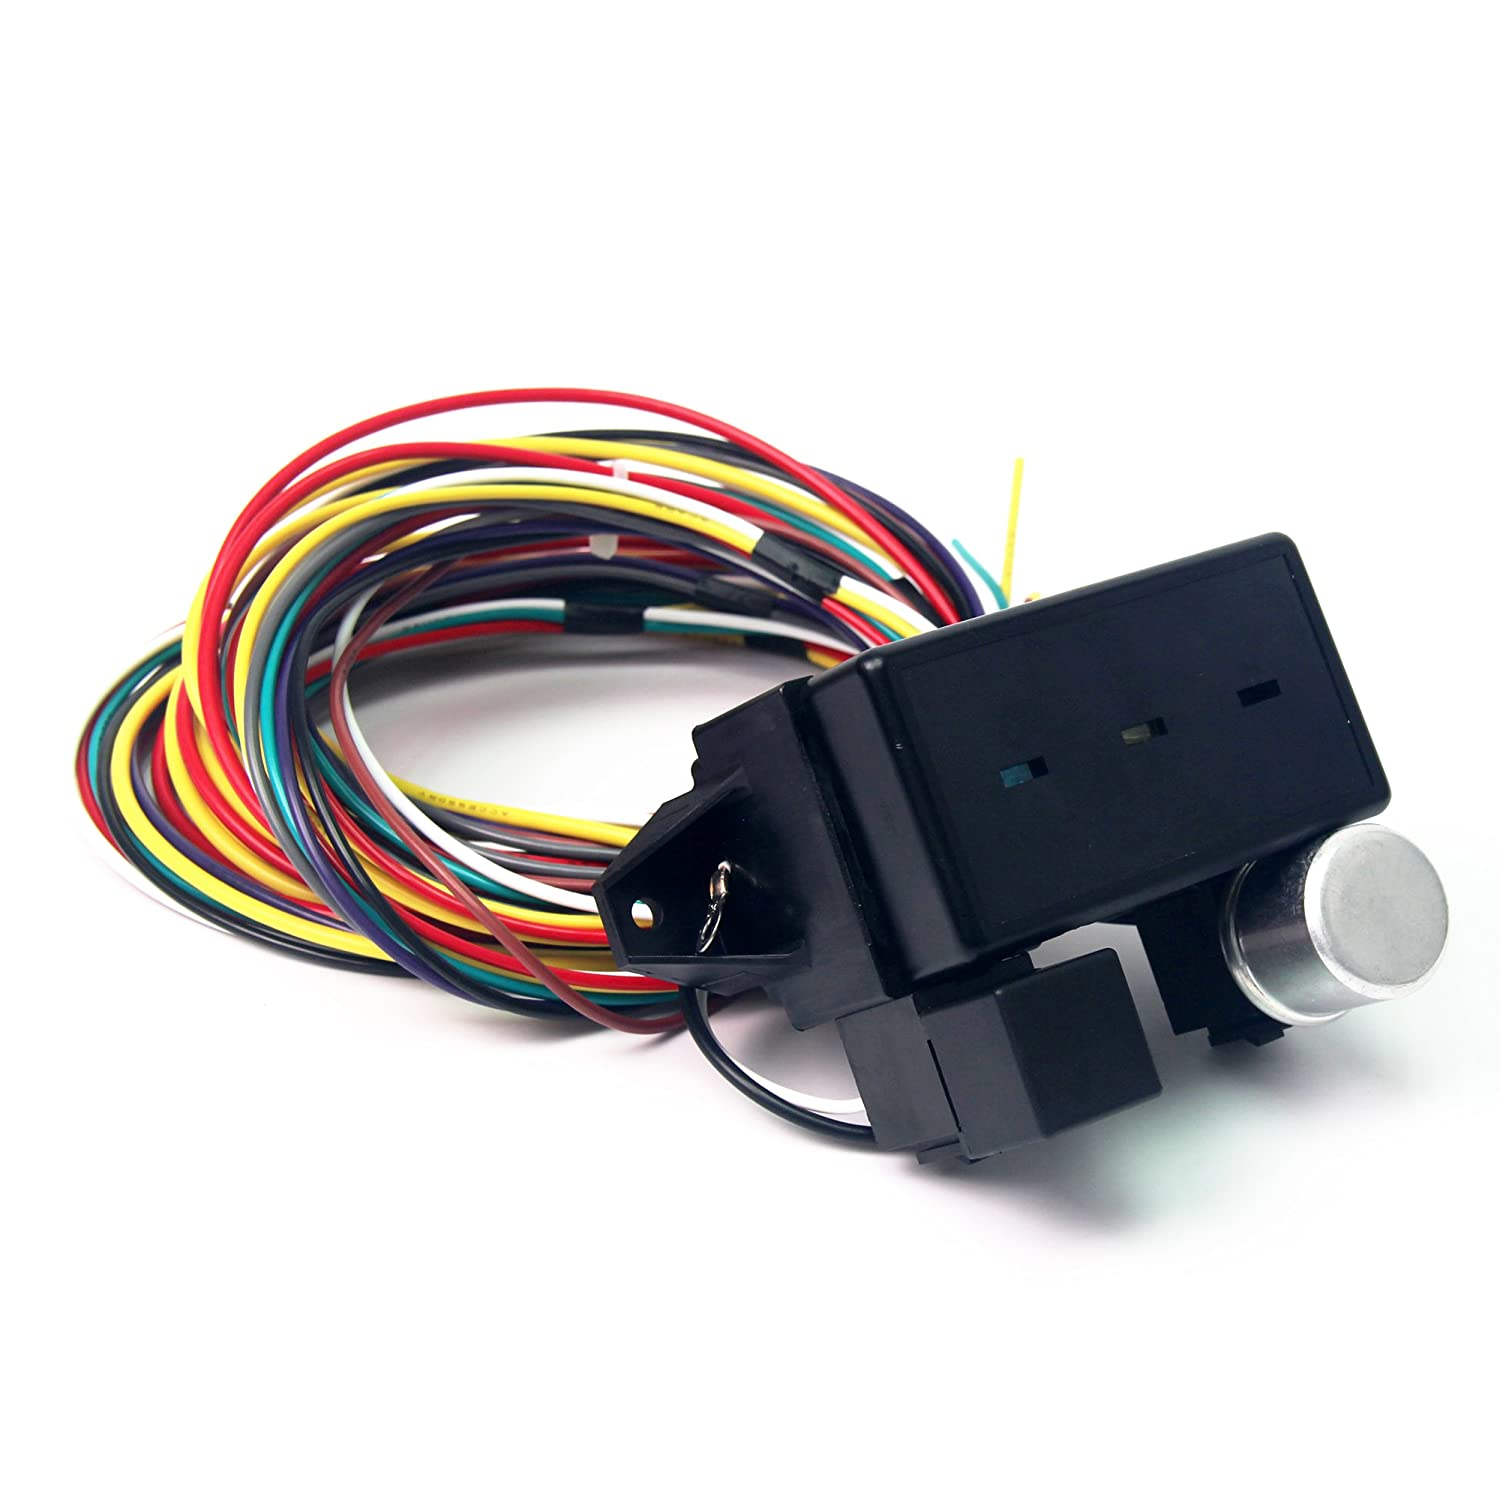 Wisamic 10 Circuit Basic Wiring Harness Fuse Box Street Cost Reduction Hot Rat Rod Car Truck 12v Automotive